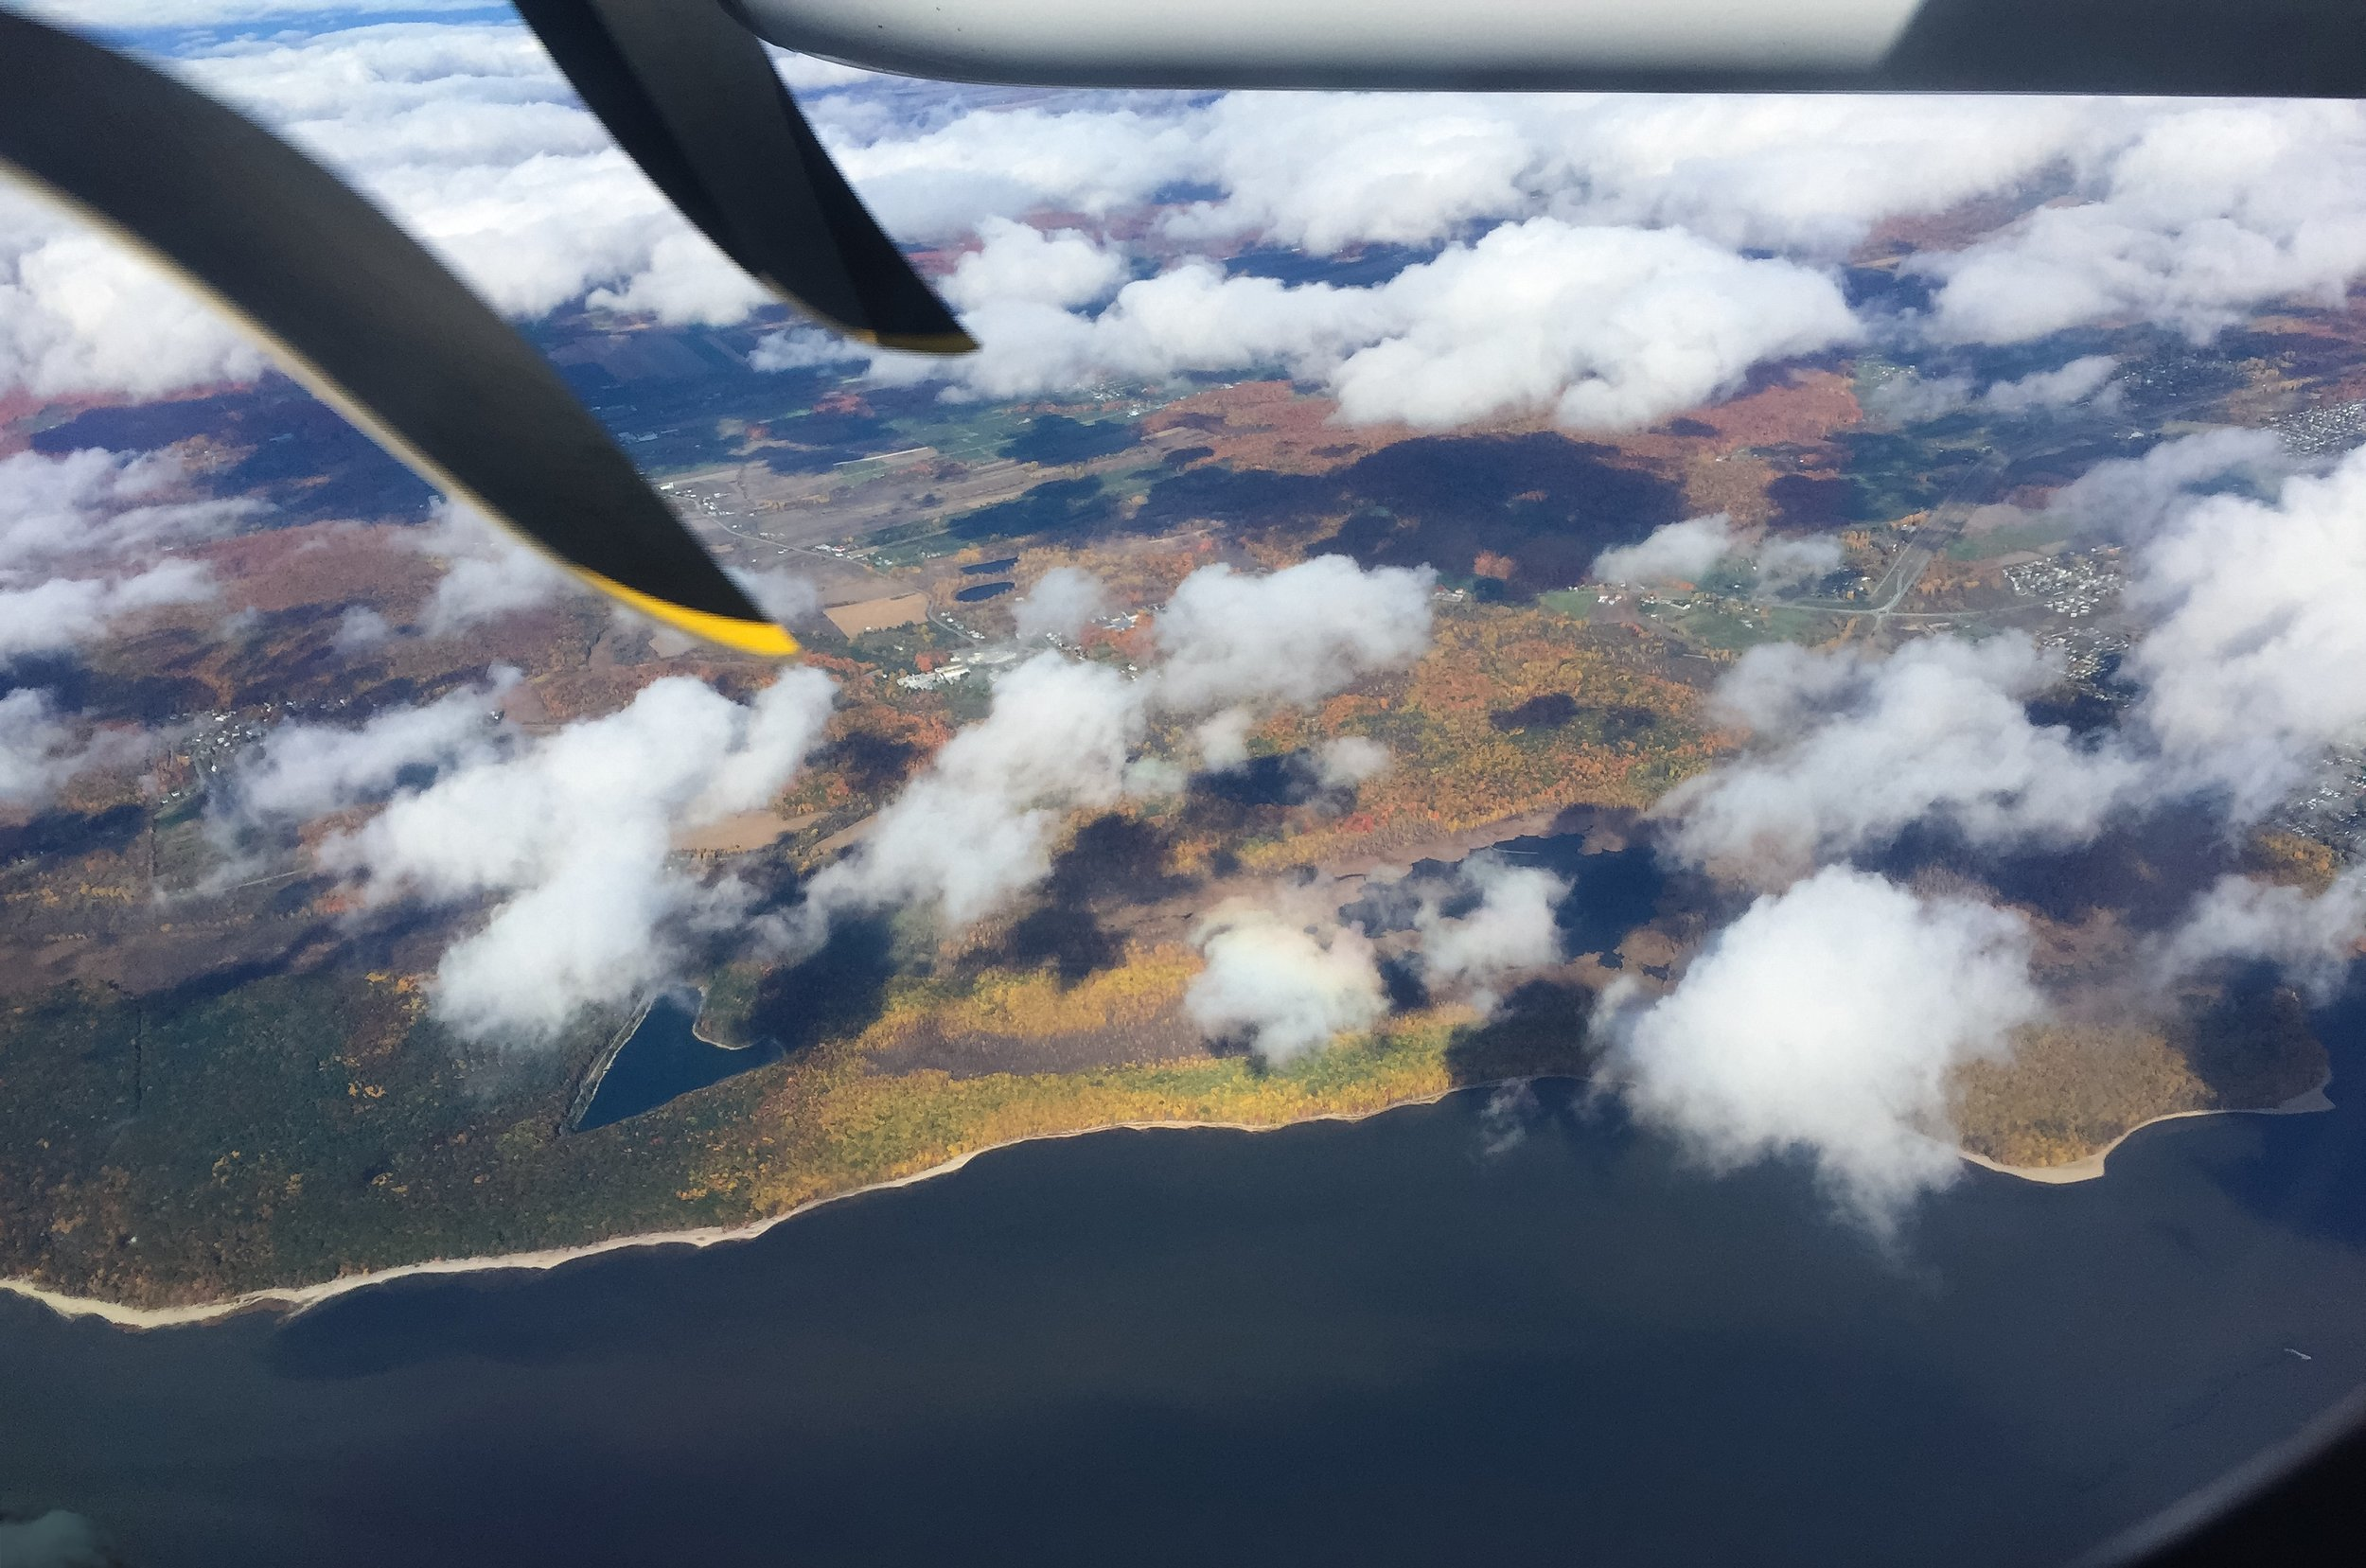 Flying over Canada in the fall.